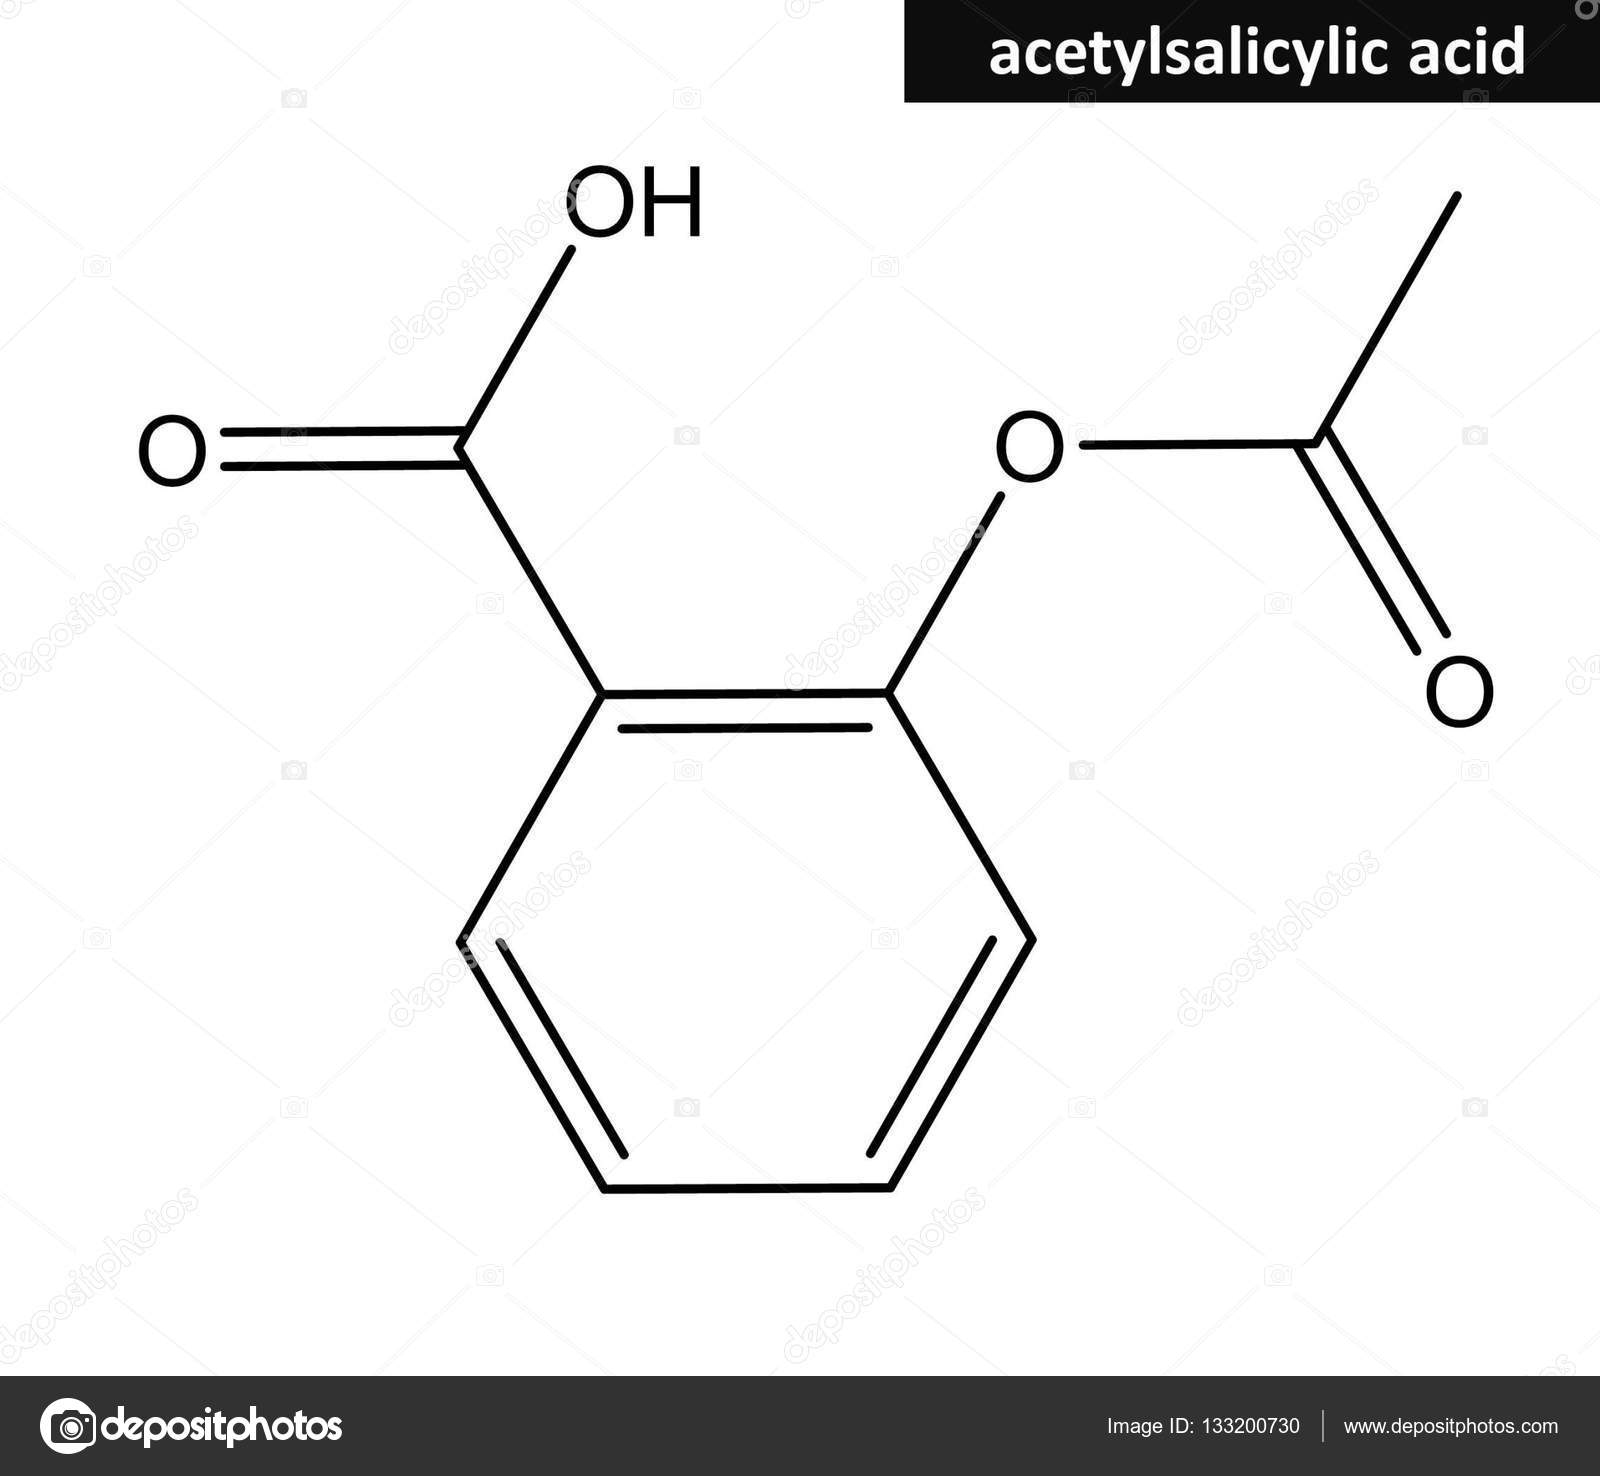 preparation of acetylsalicylic acid 1 Acetylsalicylic acid does not have the bad taste and stomach problems of salicylic acid once acetylsalicylic acid is absorbed from the intestine, it is converted back to salicylic acid it enters the bloodstream where it interferes with the synthesis of prostaglandins and irreversibly binds to an.